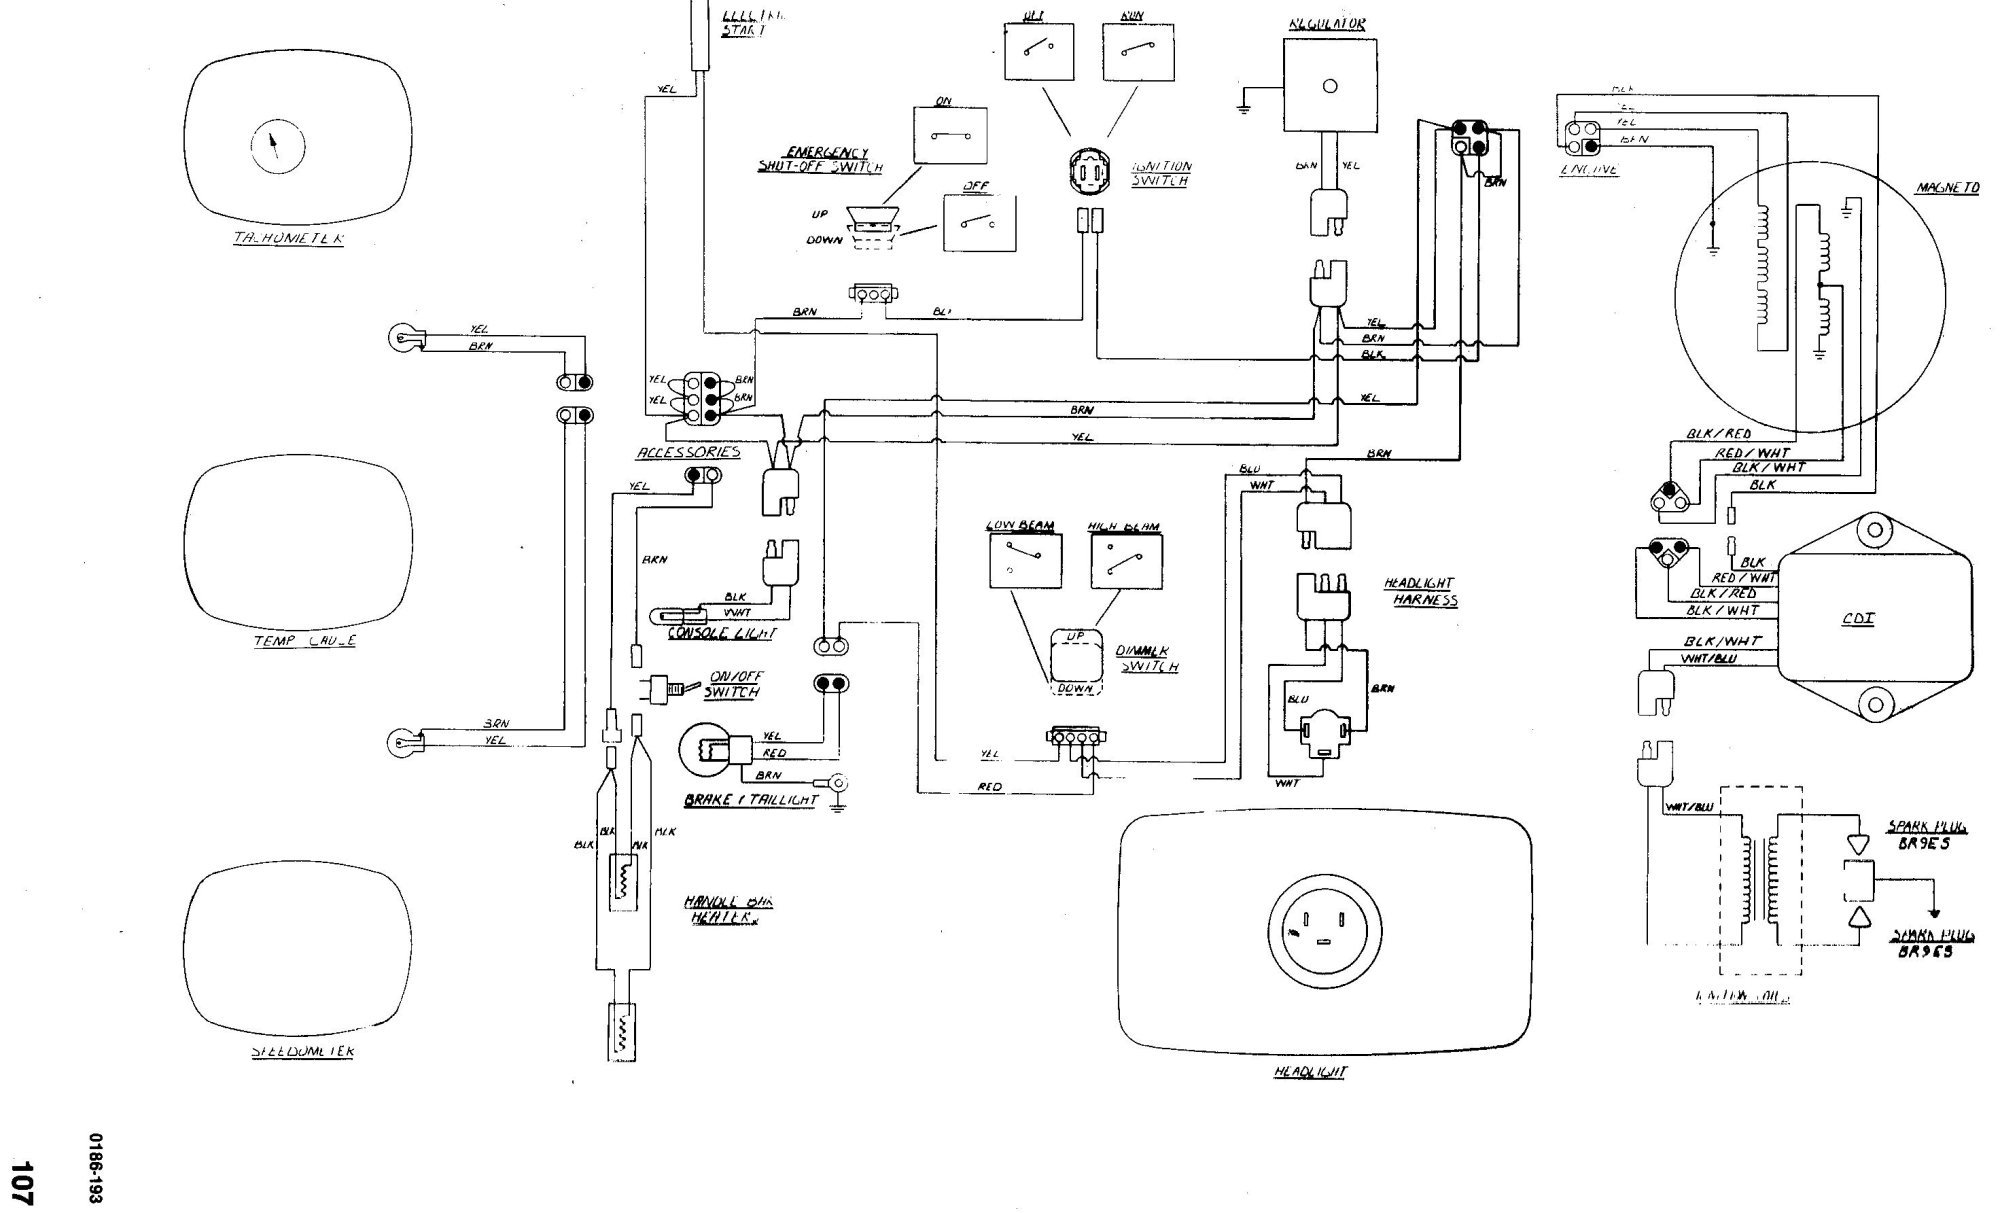 hight resolution of 1991 arctic cat jag wiring diagram advance wiring diagram arctic cat snowmobile 4 stroke wiring diagrams